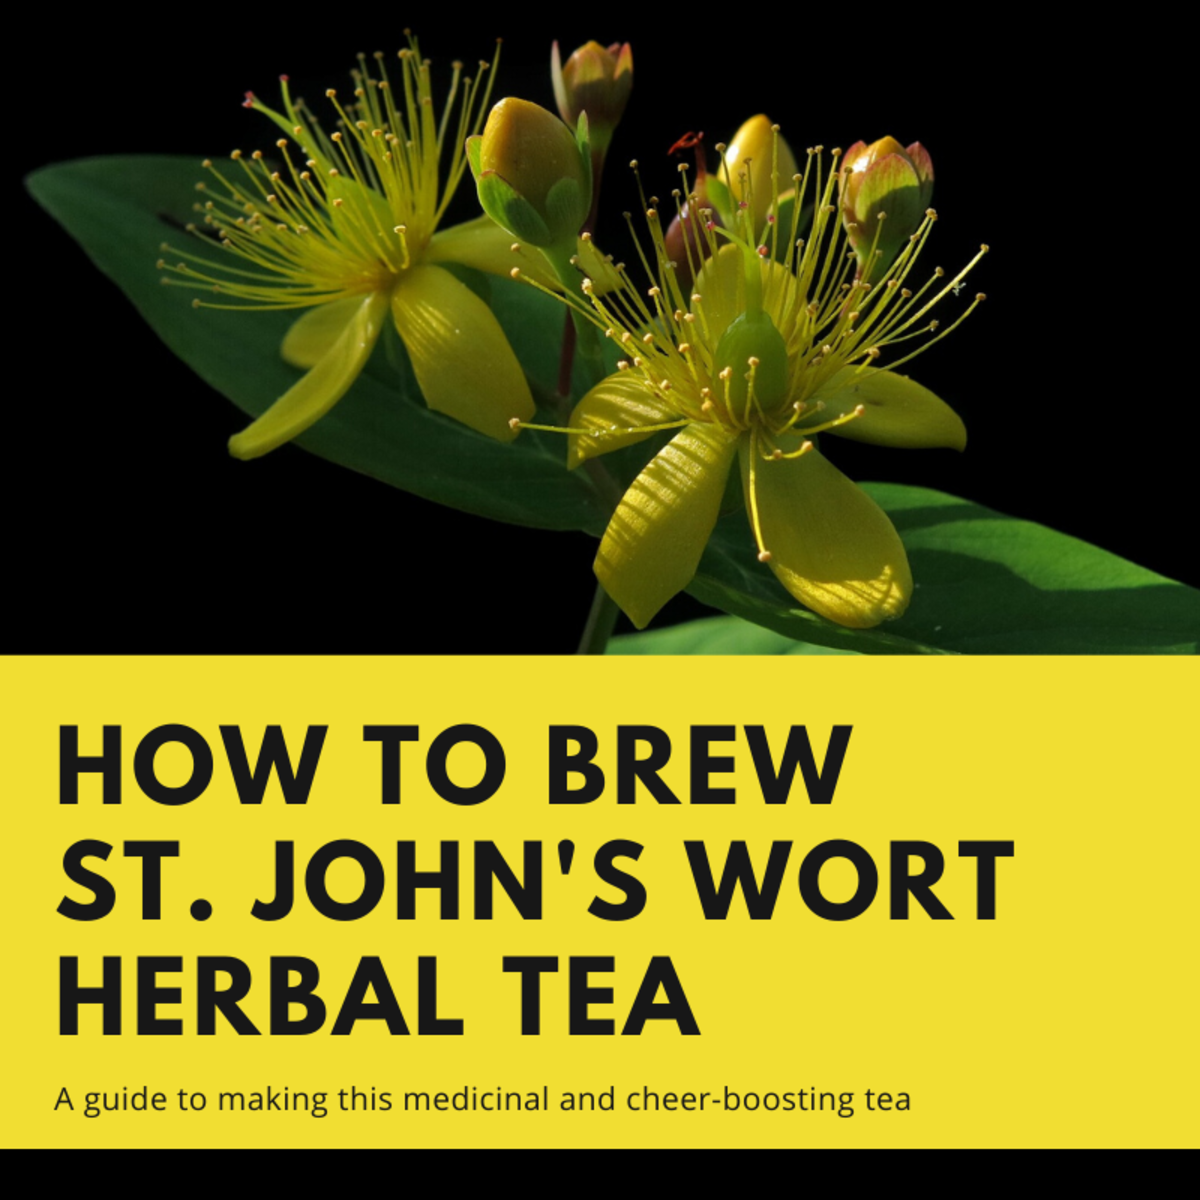 How to Brew and Prepare St. John's Wort Herbal Tea